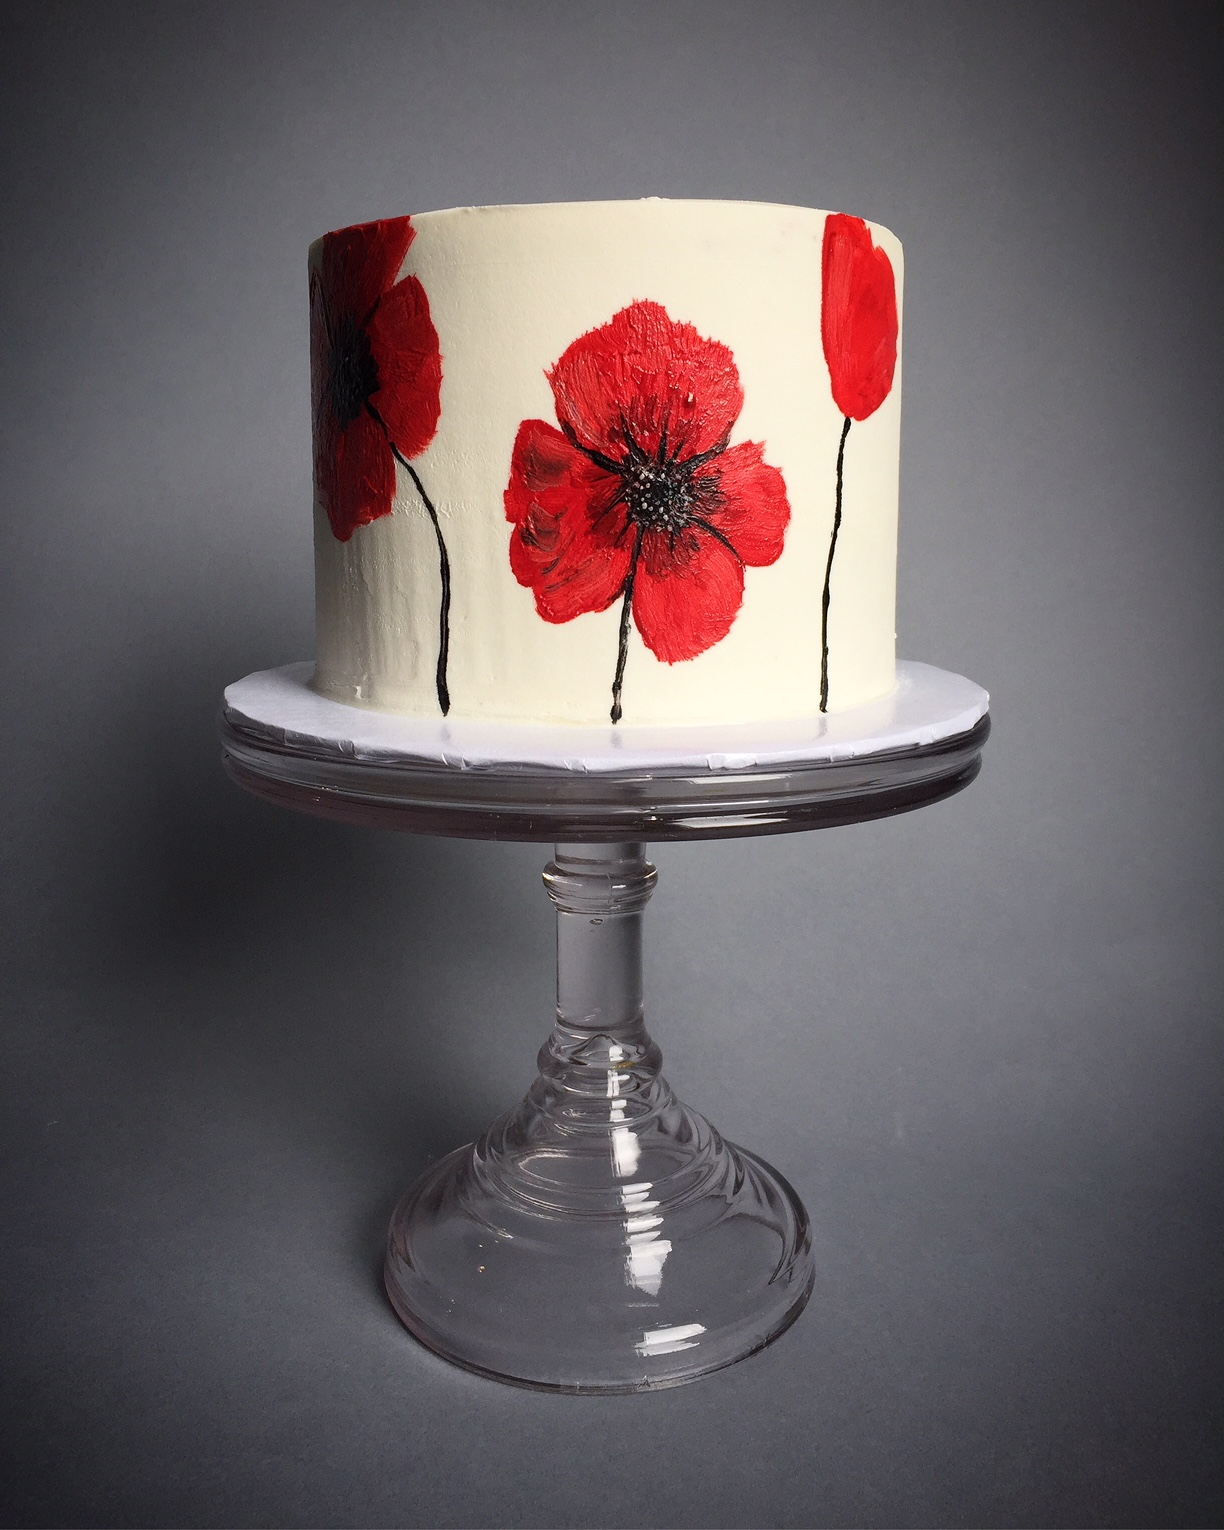 White wedding cake with hand painted red poppies